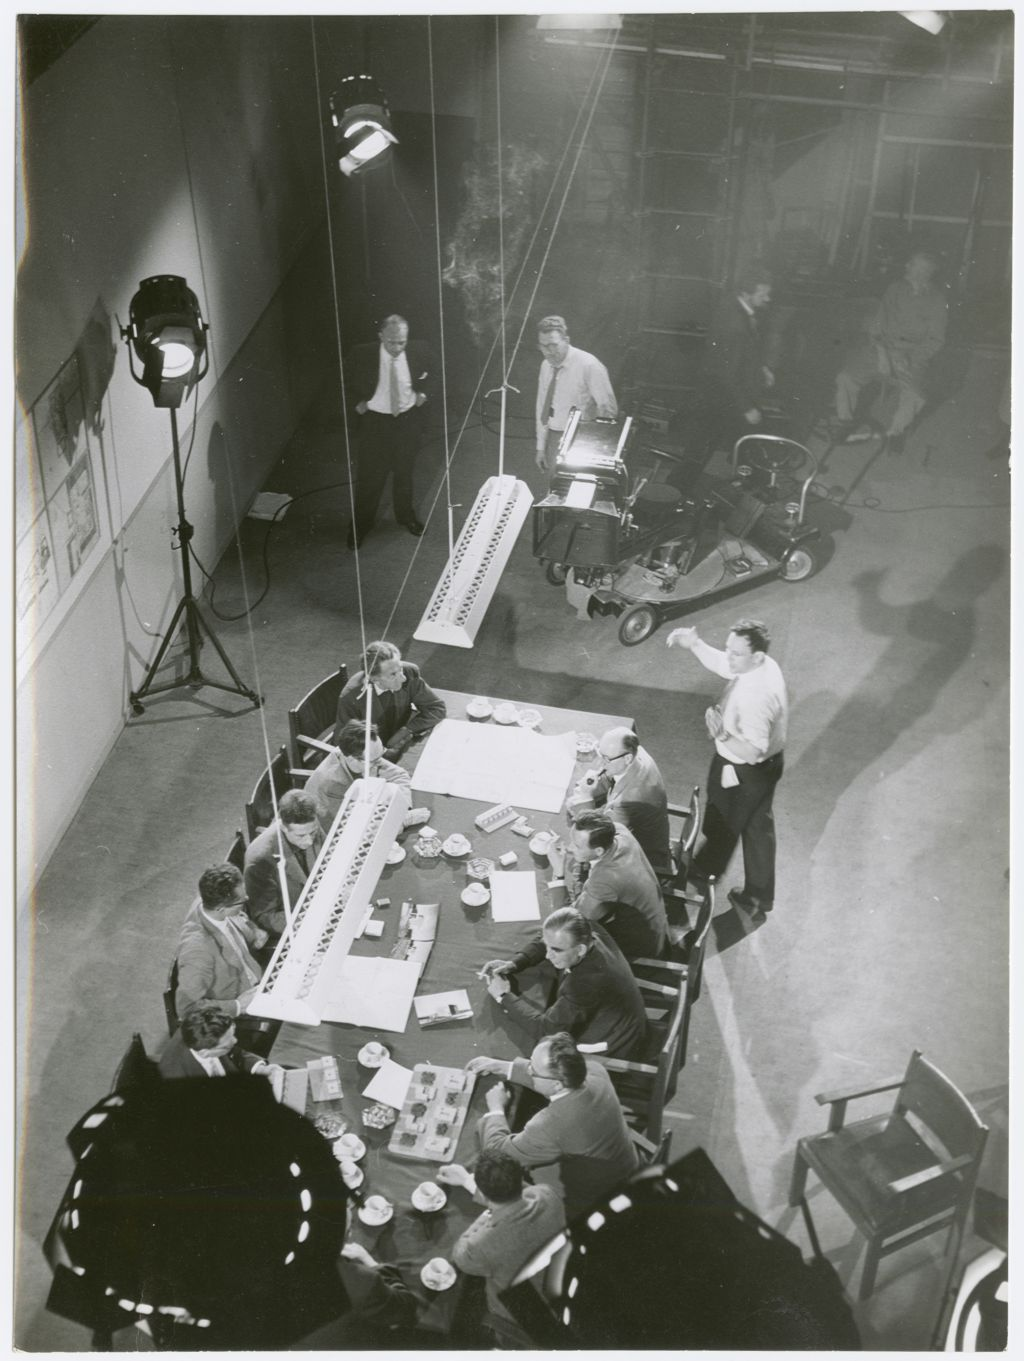 Architects discussing the design of Nagele, while acting in the film 'Een nieuw dorp op nieuw land' (A New Village on New Land) by Louis van Gasteren, 1960. Photo Spectrum Film, Amsterdam. Collection Het Nieuwe Instituut, BODE ph21